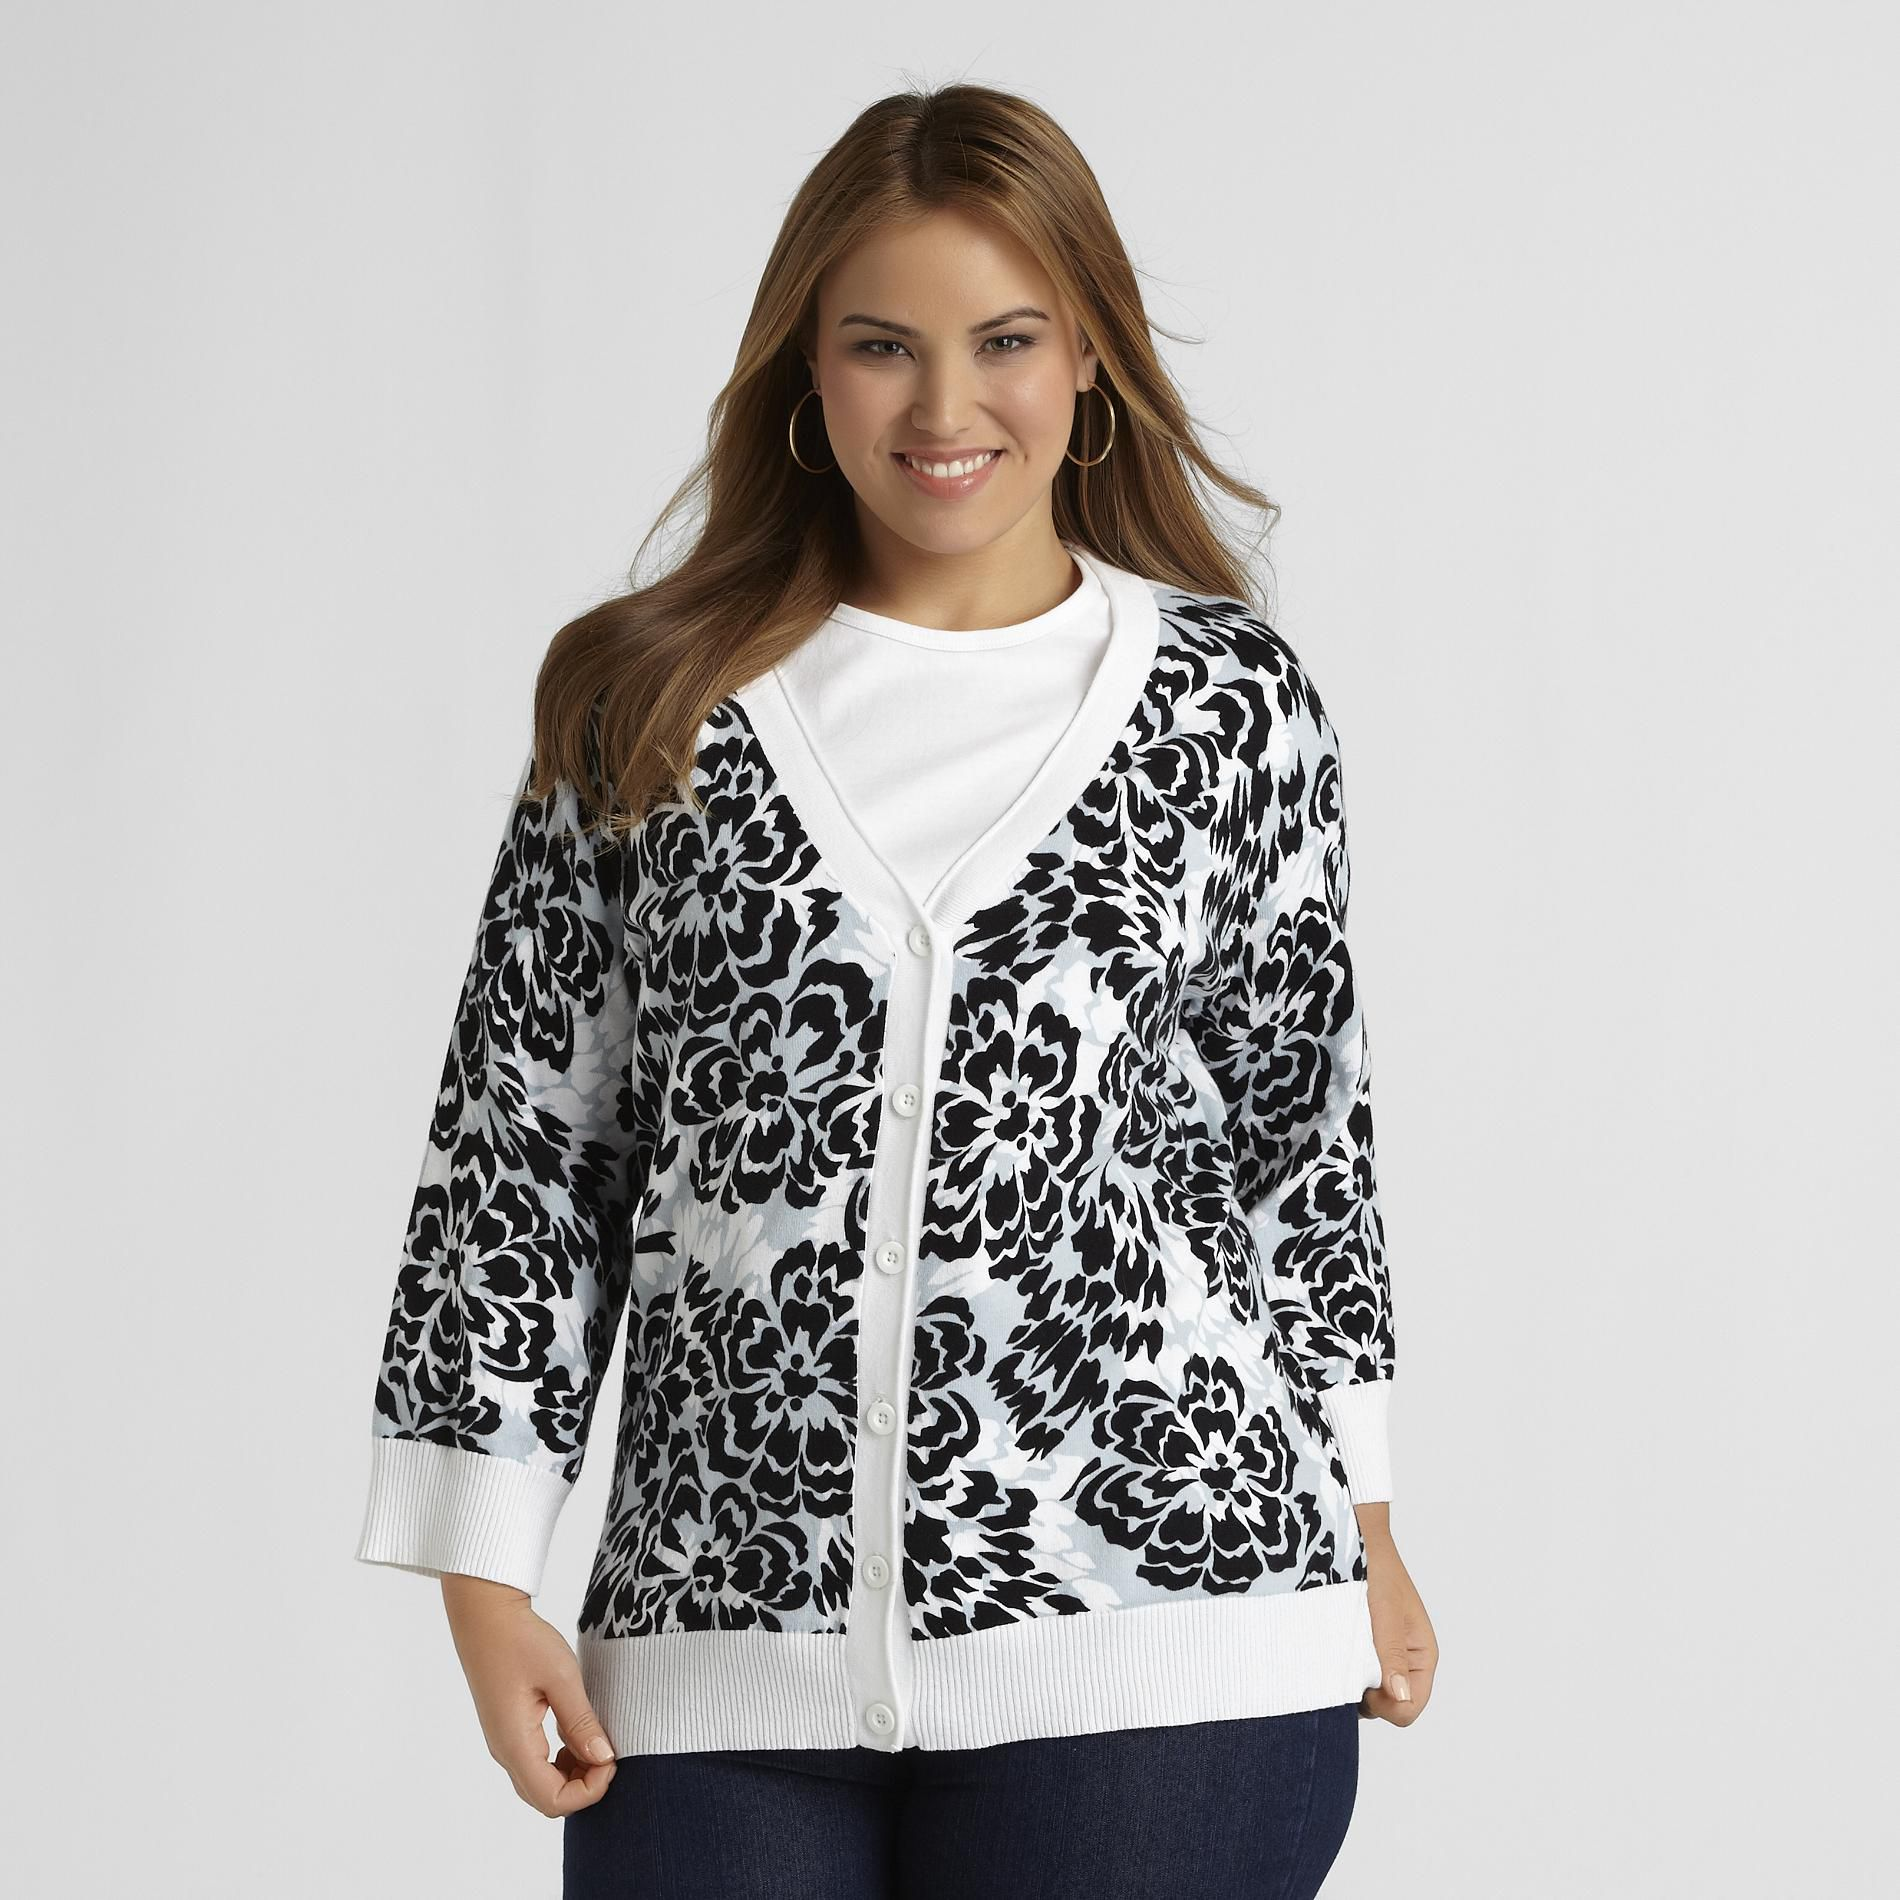 Basic Editions Women's Plus Cardigan Sweater - Floral at Kmart.com